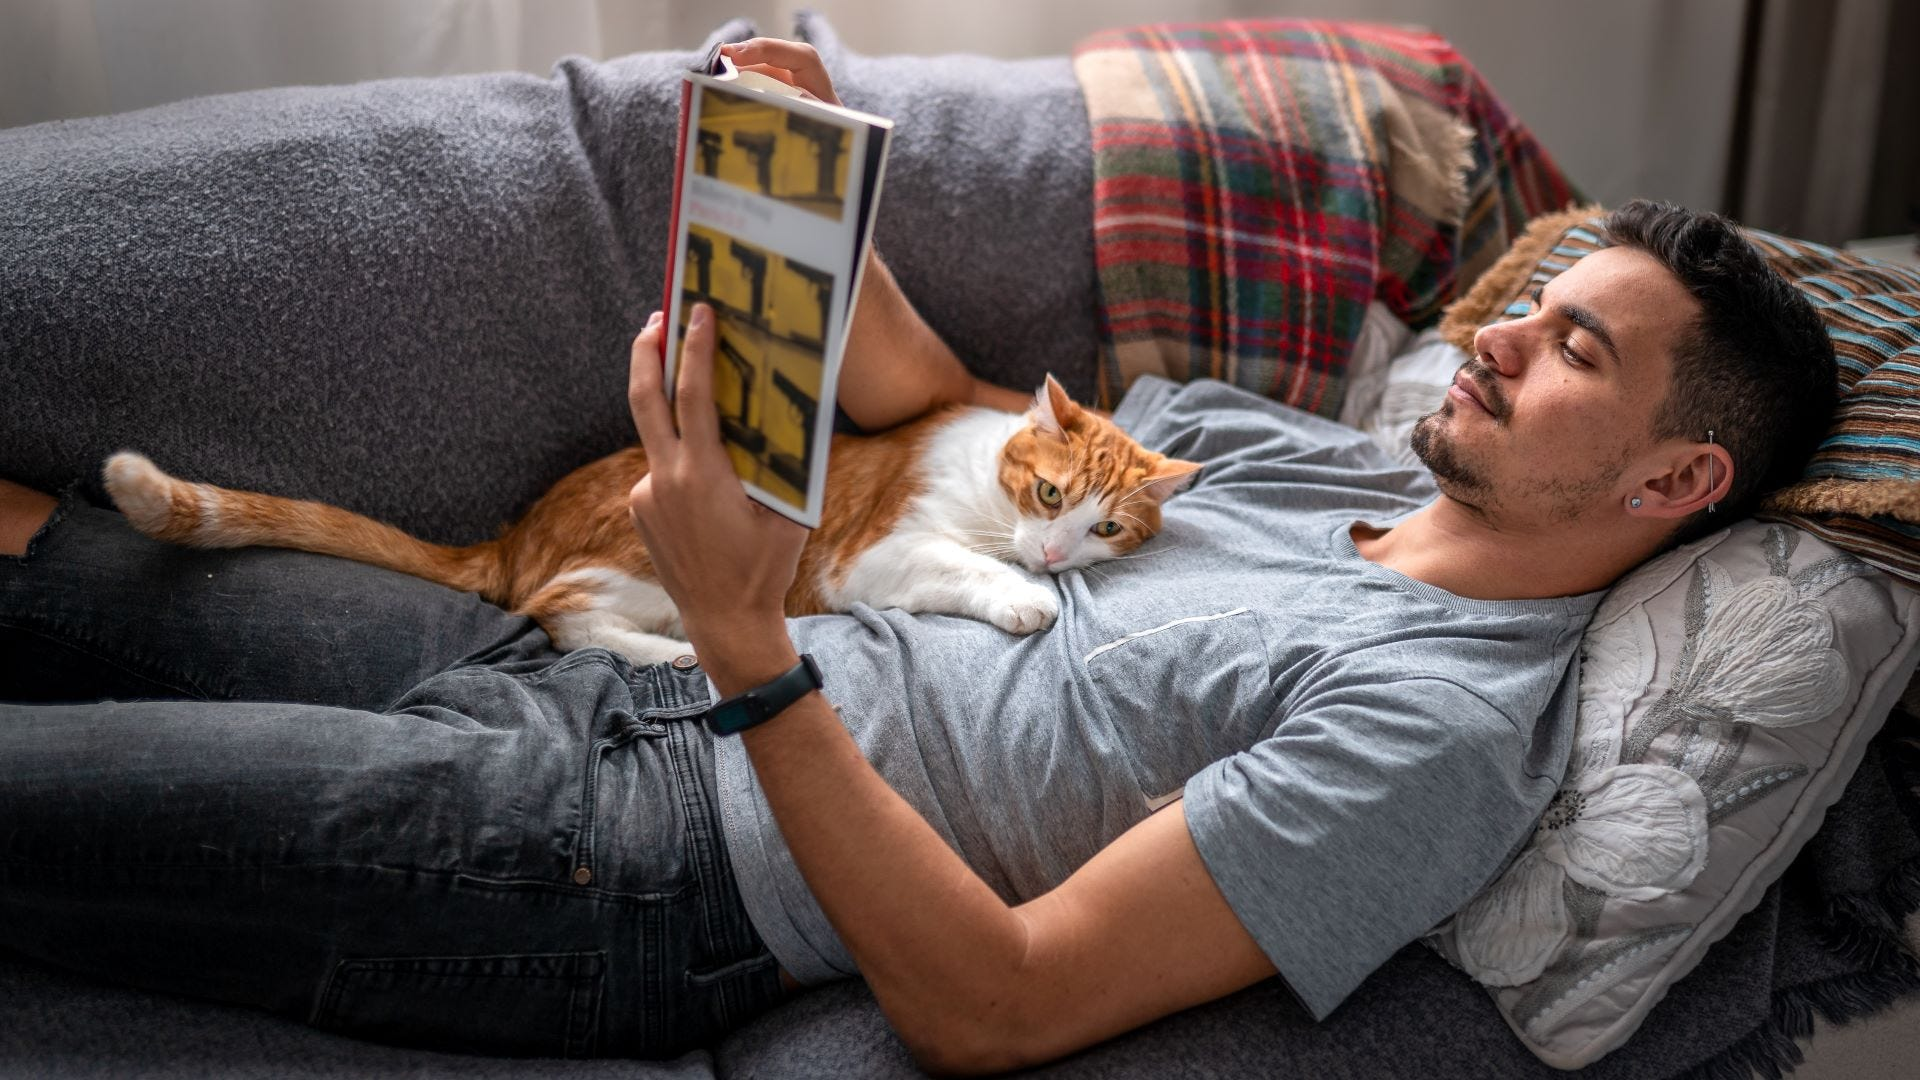 A man reading on a couch with a cat on his chest.